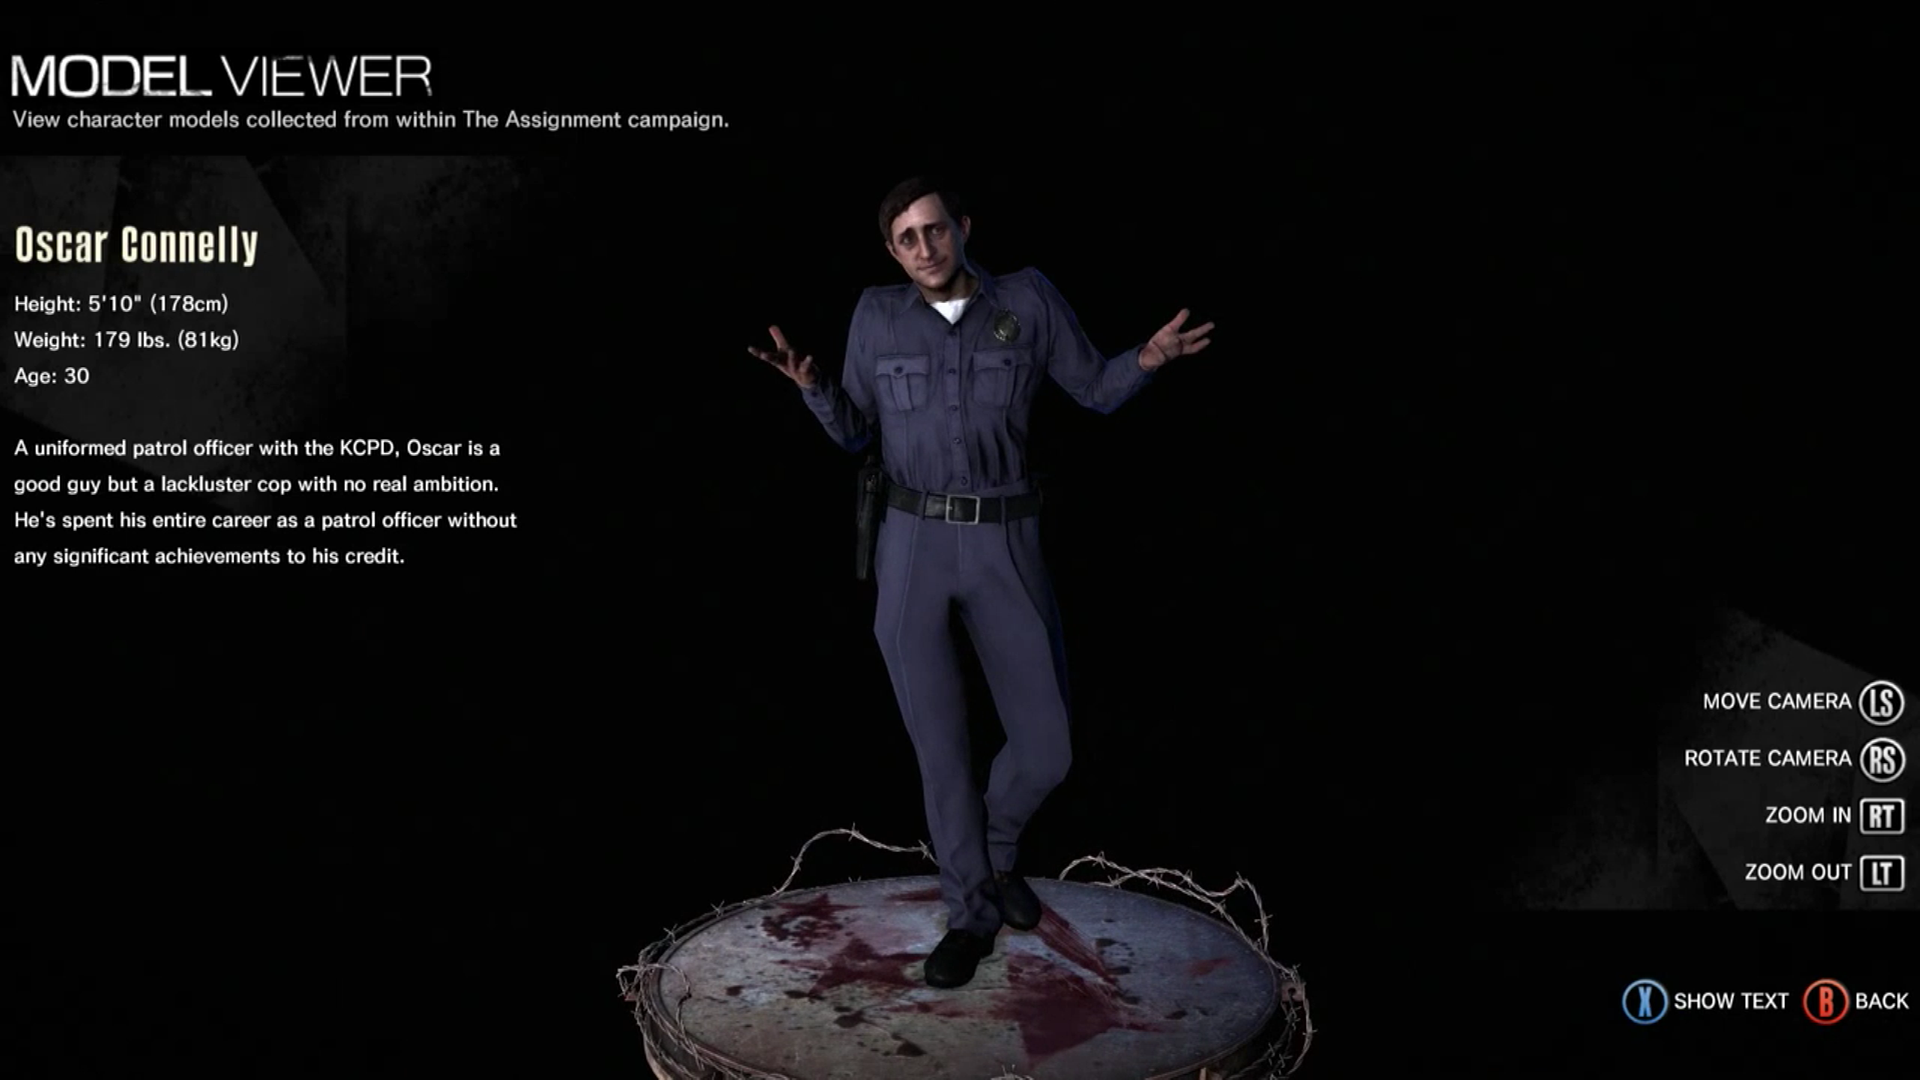 Wallpaper Theodore Harbinger The Evil Within 2 Hd: Image - Oscar Connelly Model Viewer.png